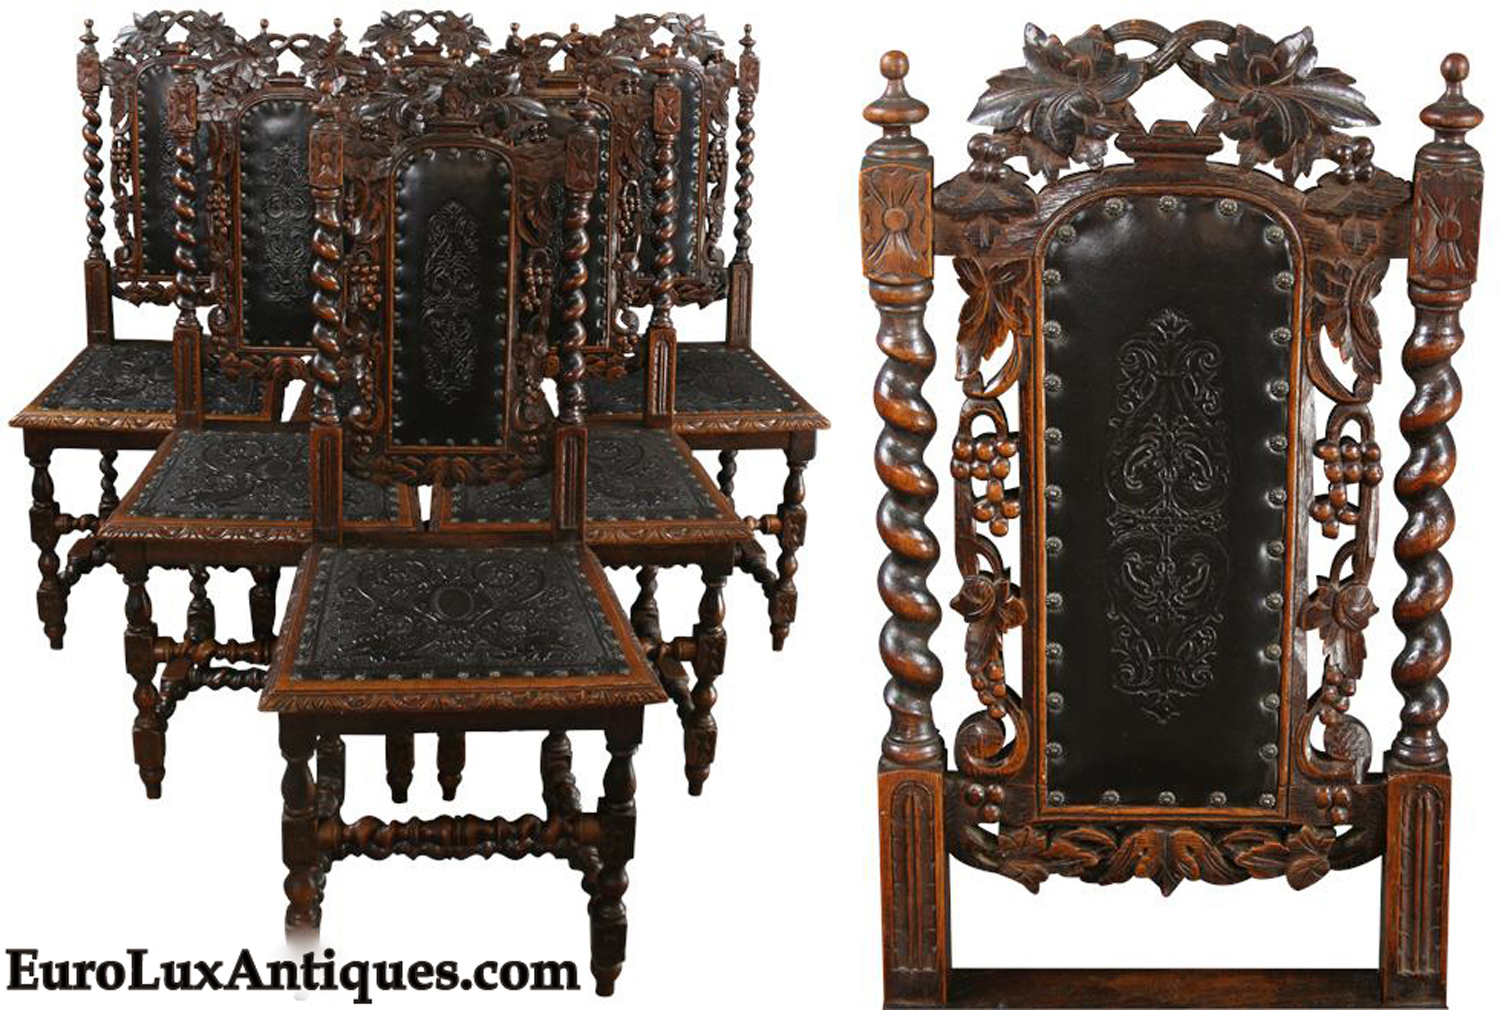 Antique French Hunting Chairs & Thrones, vintage Spanish Renaissance table, Art Deco buffet from EuroLuxAntiques.com